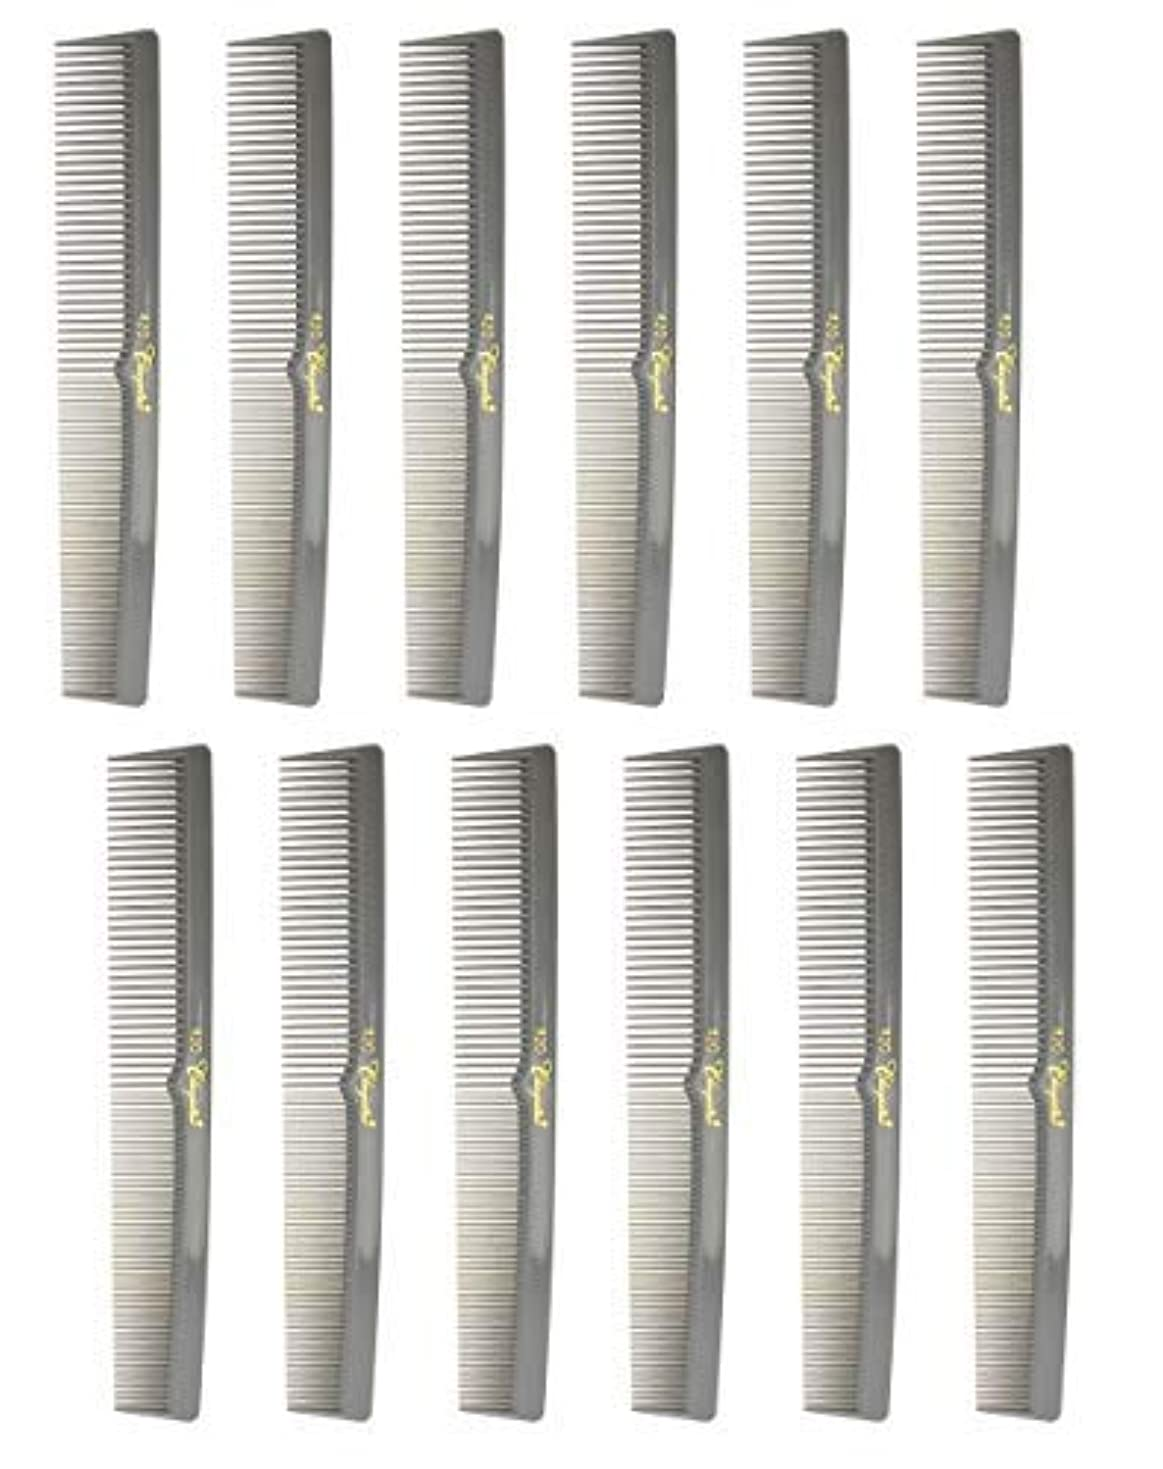 年次永久会計士7 Inch Hair Cutting Combs. Barber's & Hairstylist Combs. Gray. 1 DZ. [並行輸入品]